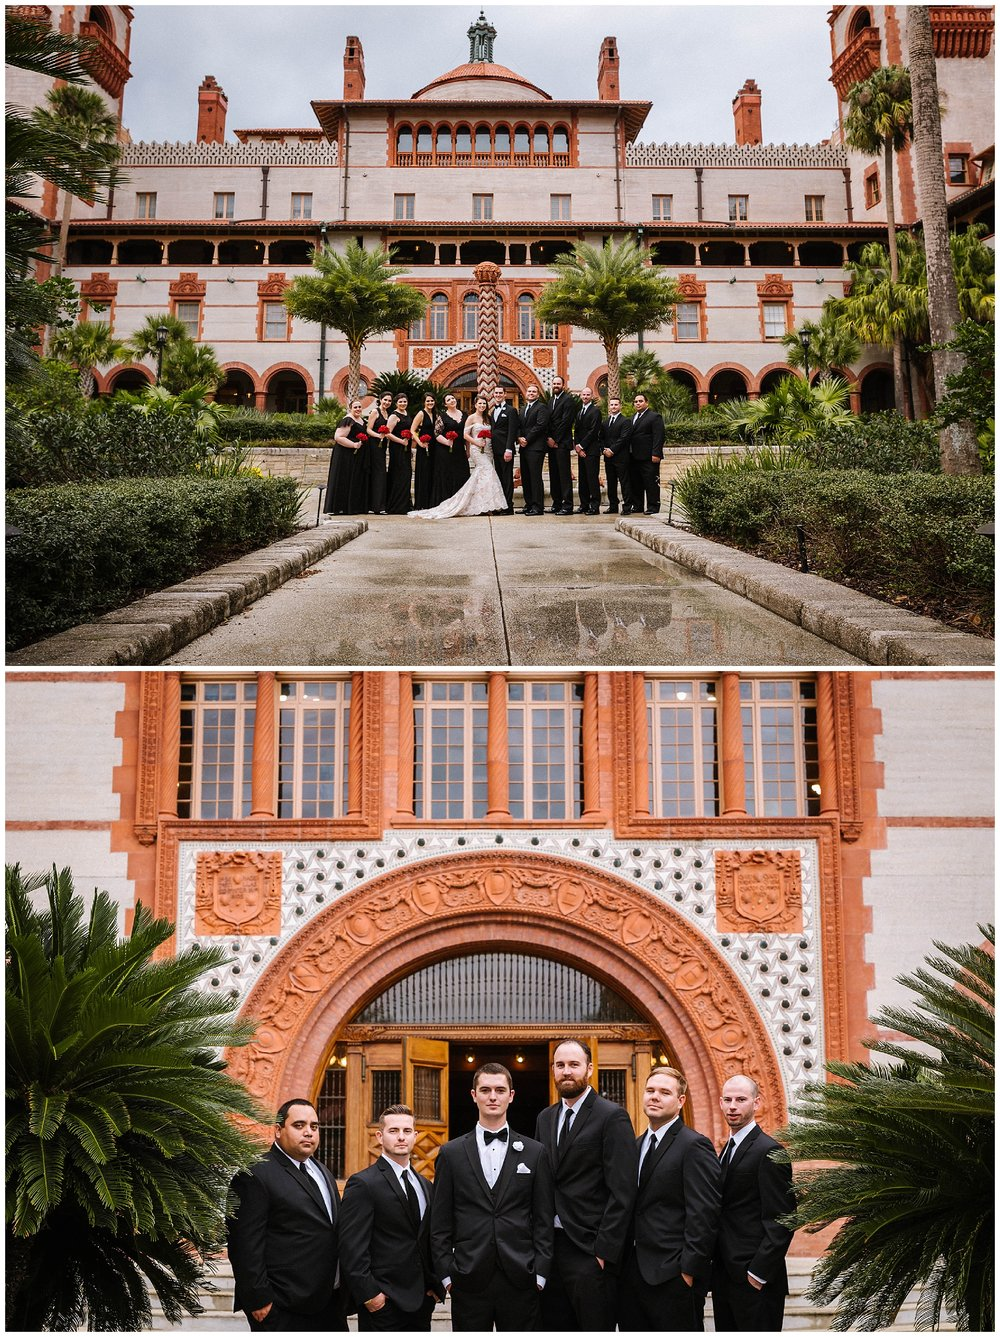 st-augustine-wedding-photographer-rainy-lightner-museum-flagler-casa-monica_0015.jpg